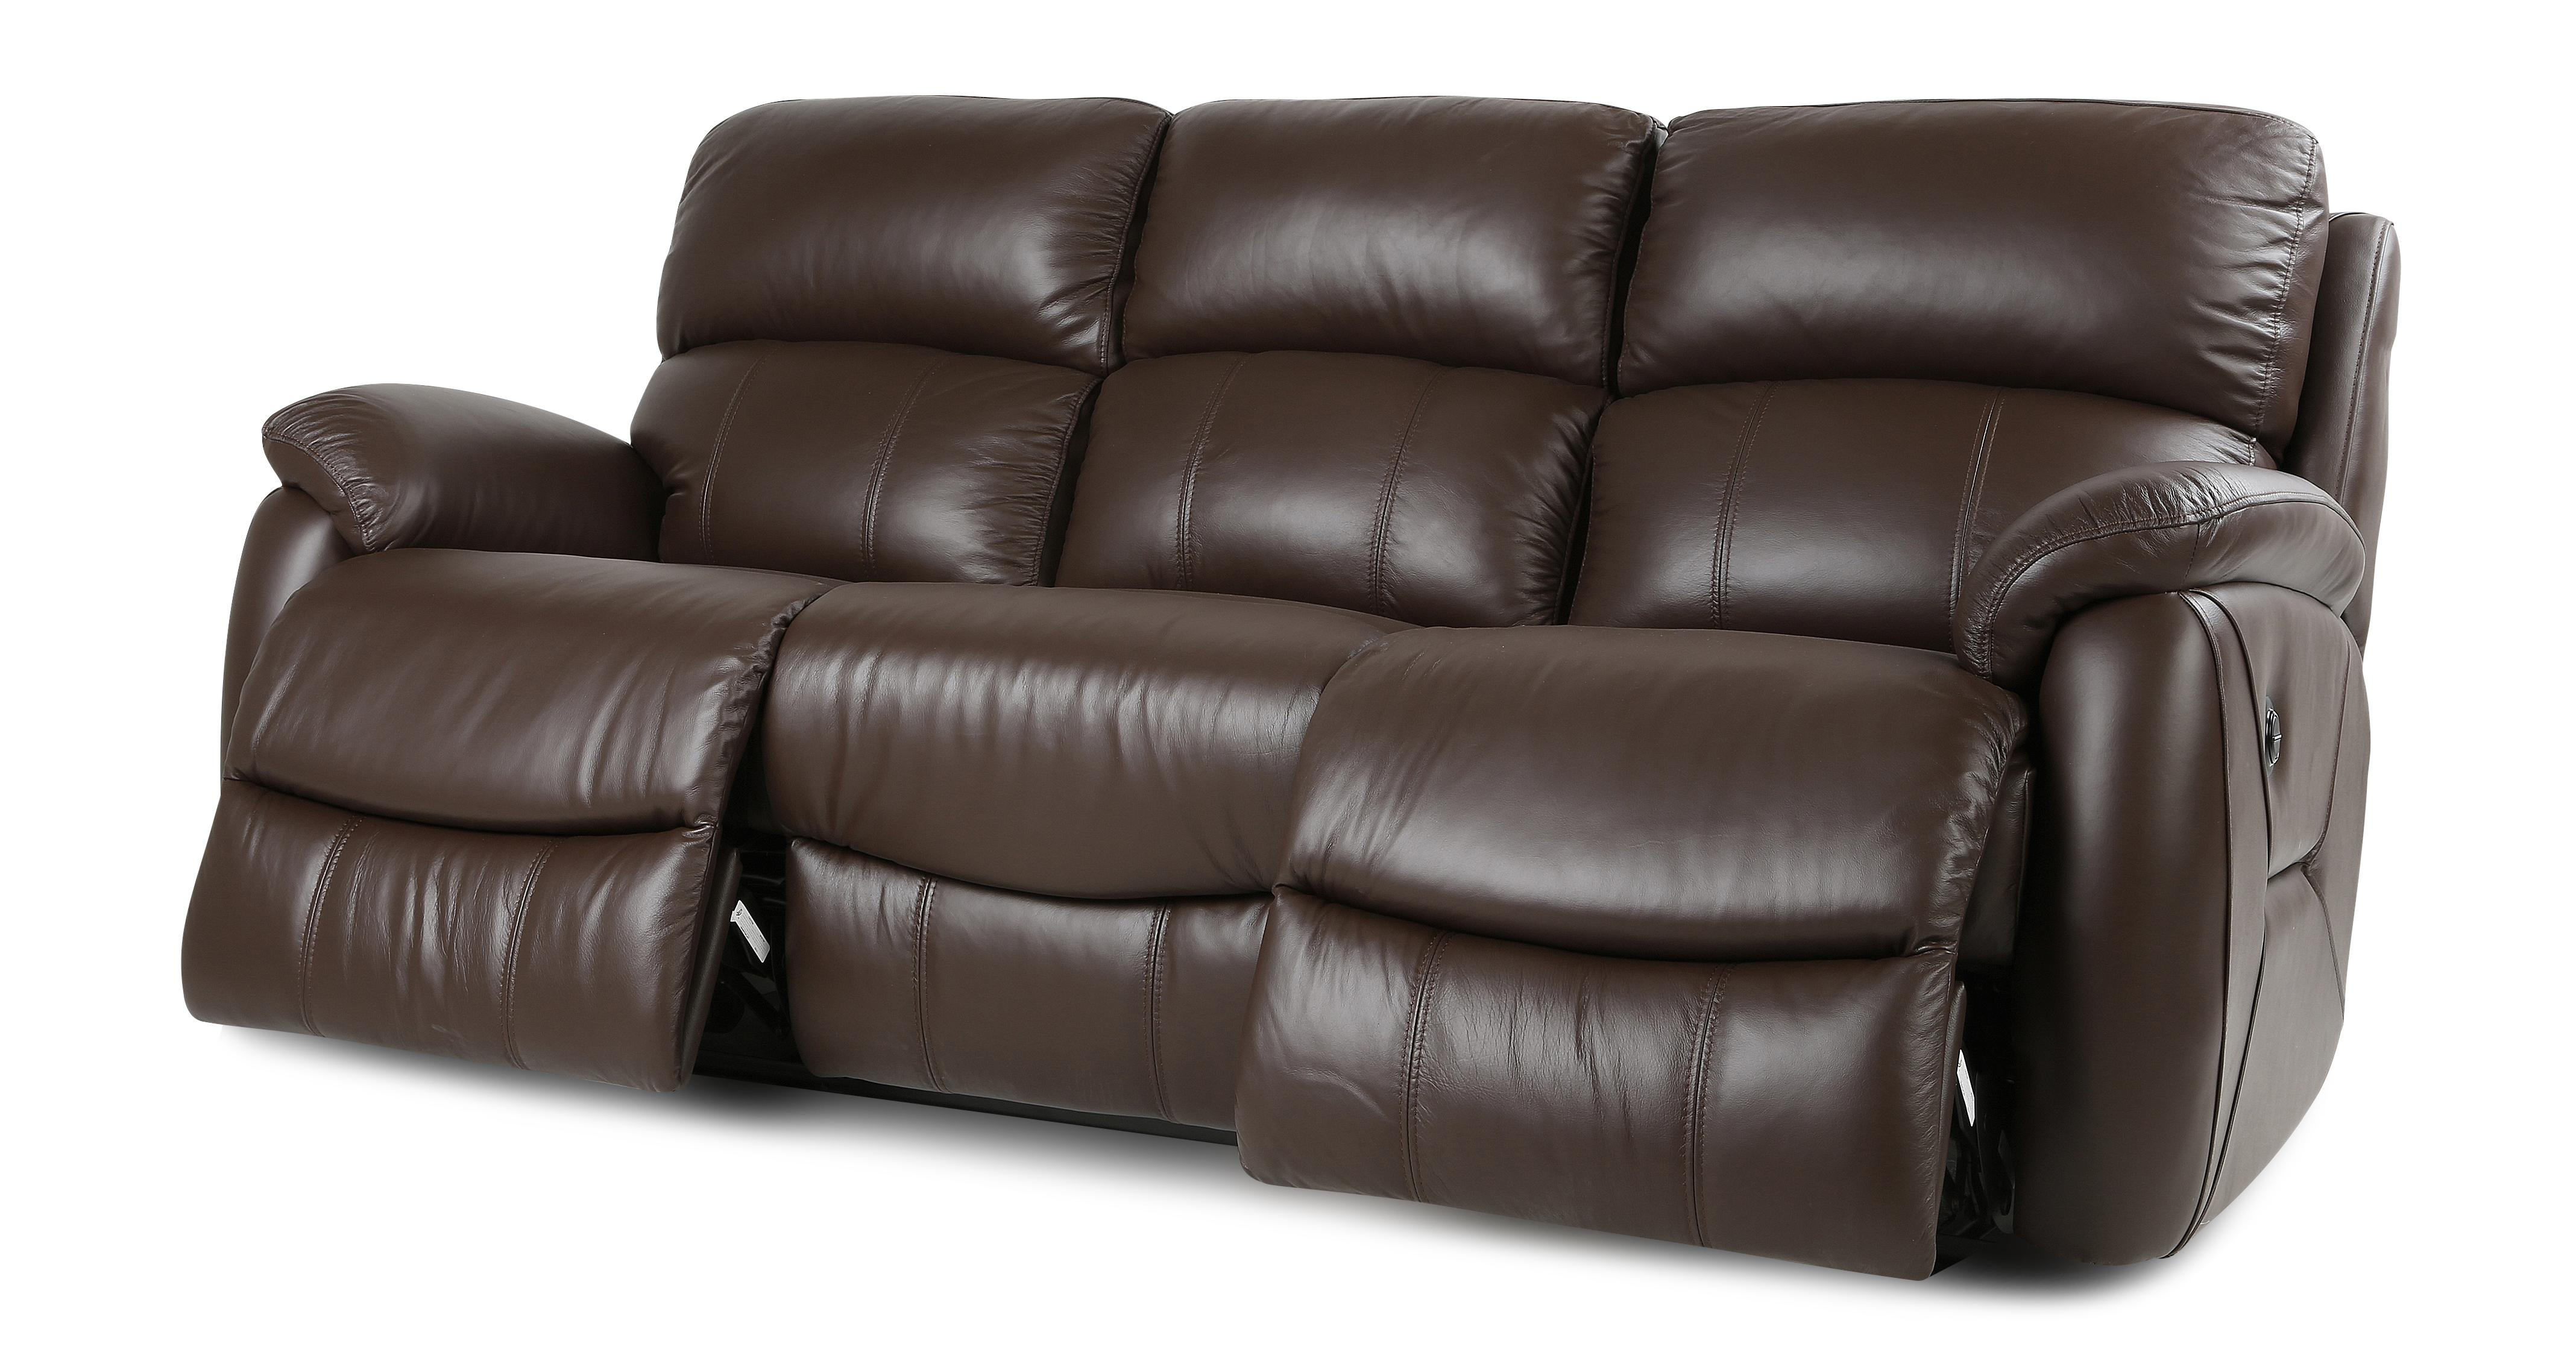 brown leather recliner sofa uk s sofas dfs navona couch settee 3 seater power